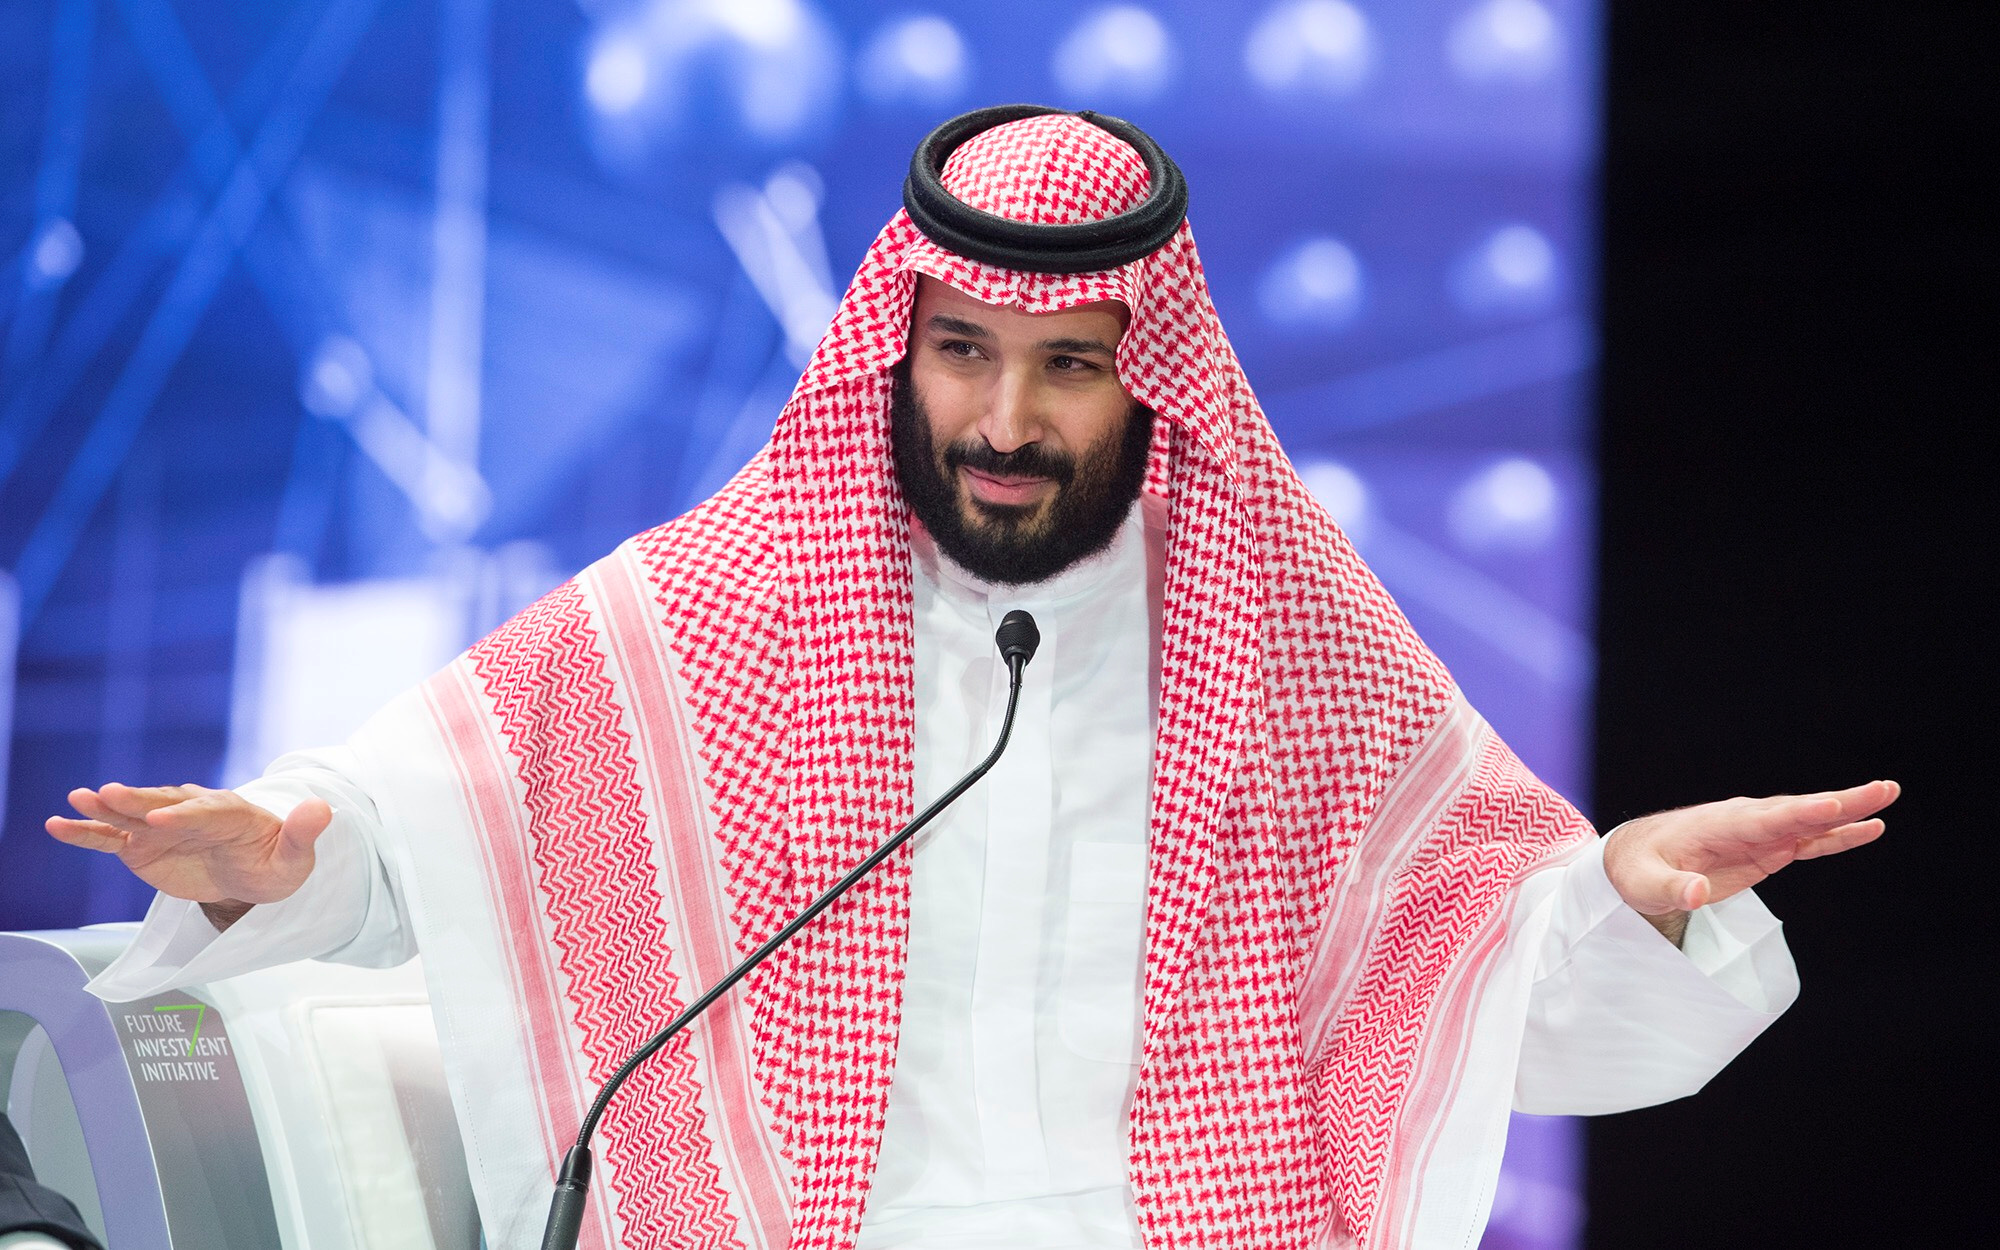 Saudi Crown Prince Mohammed bin Salman speaks during the Future Investment Initiative Forum in Riyadh, Saudi Arabia October 24, 2018. Bandar Algaloud/Courtesy of Saudi Royal Court/Handout via REUTERS